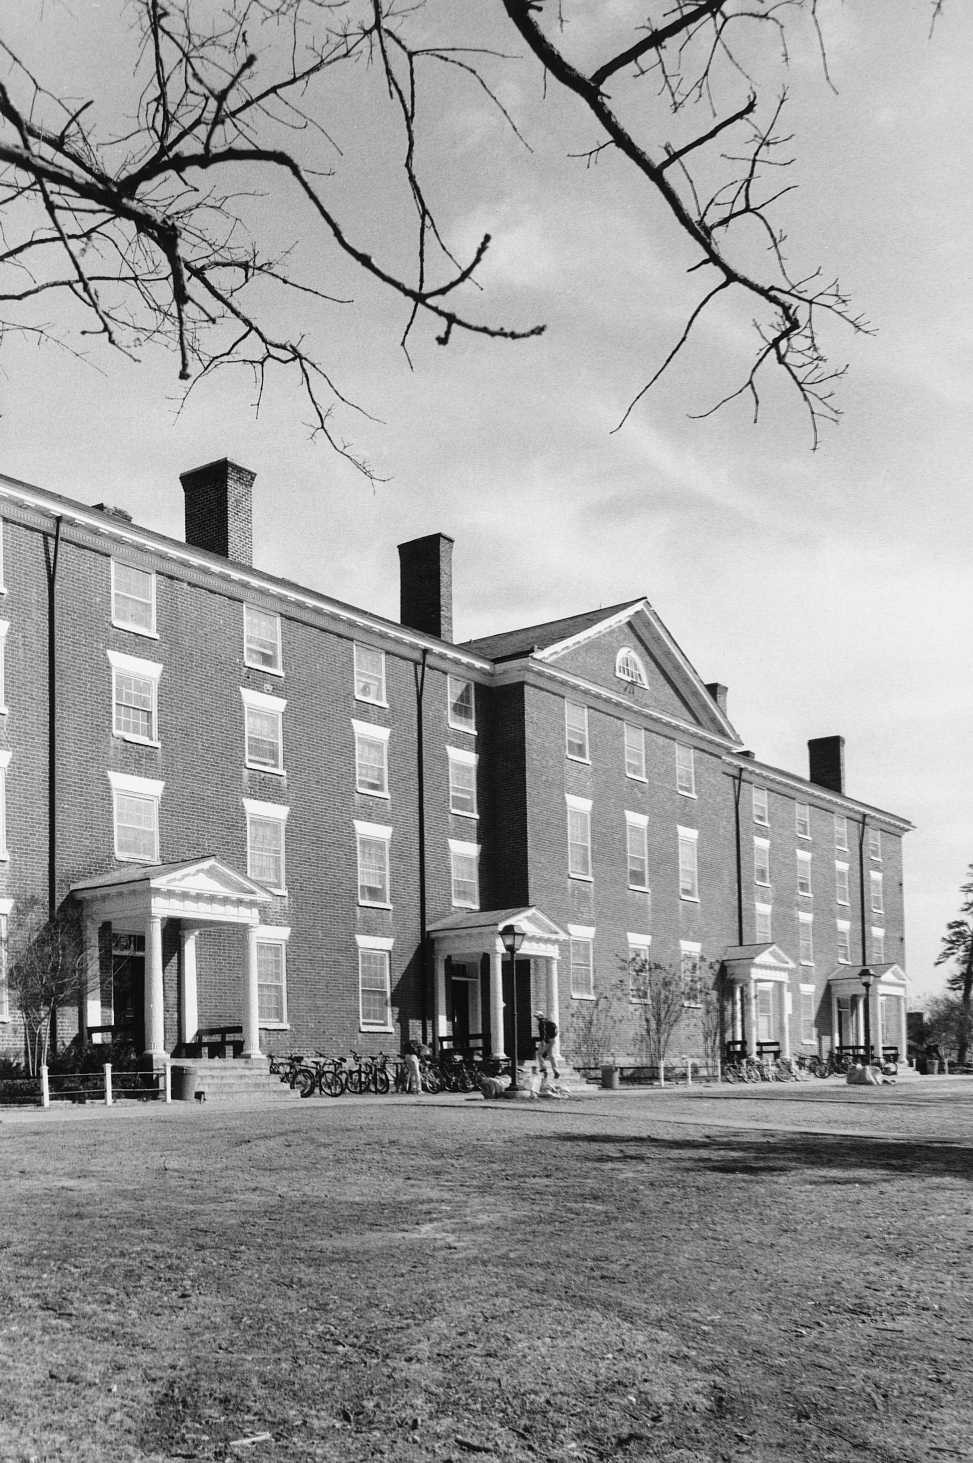 Hampden Sydney College Historic District